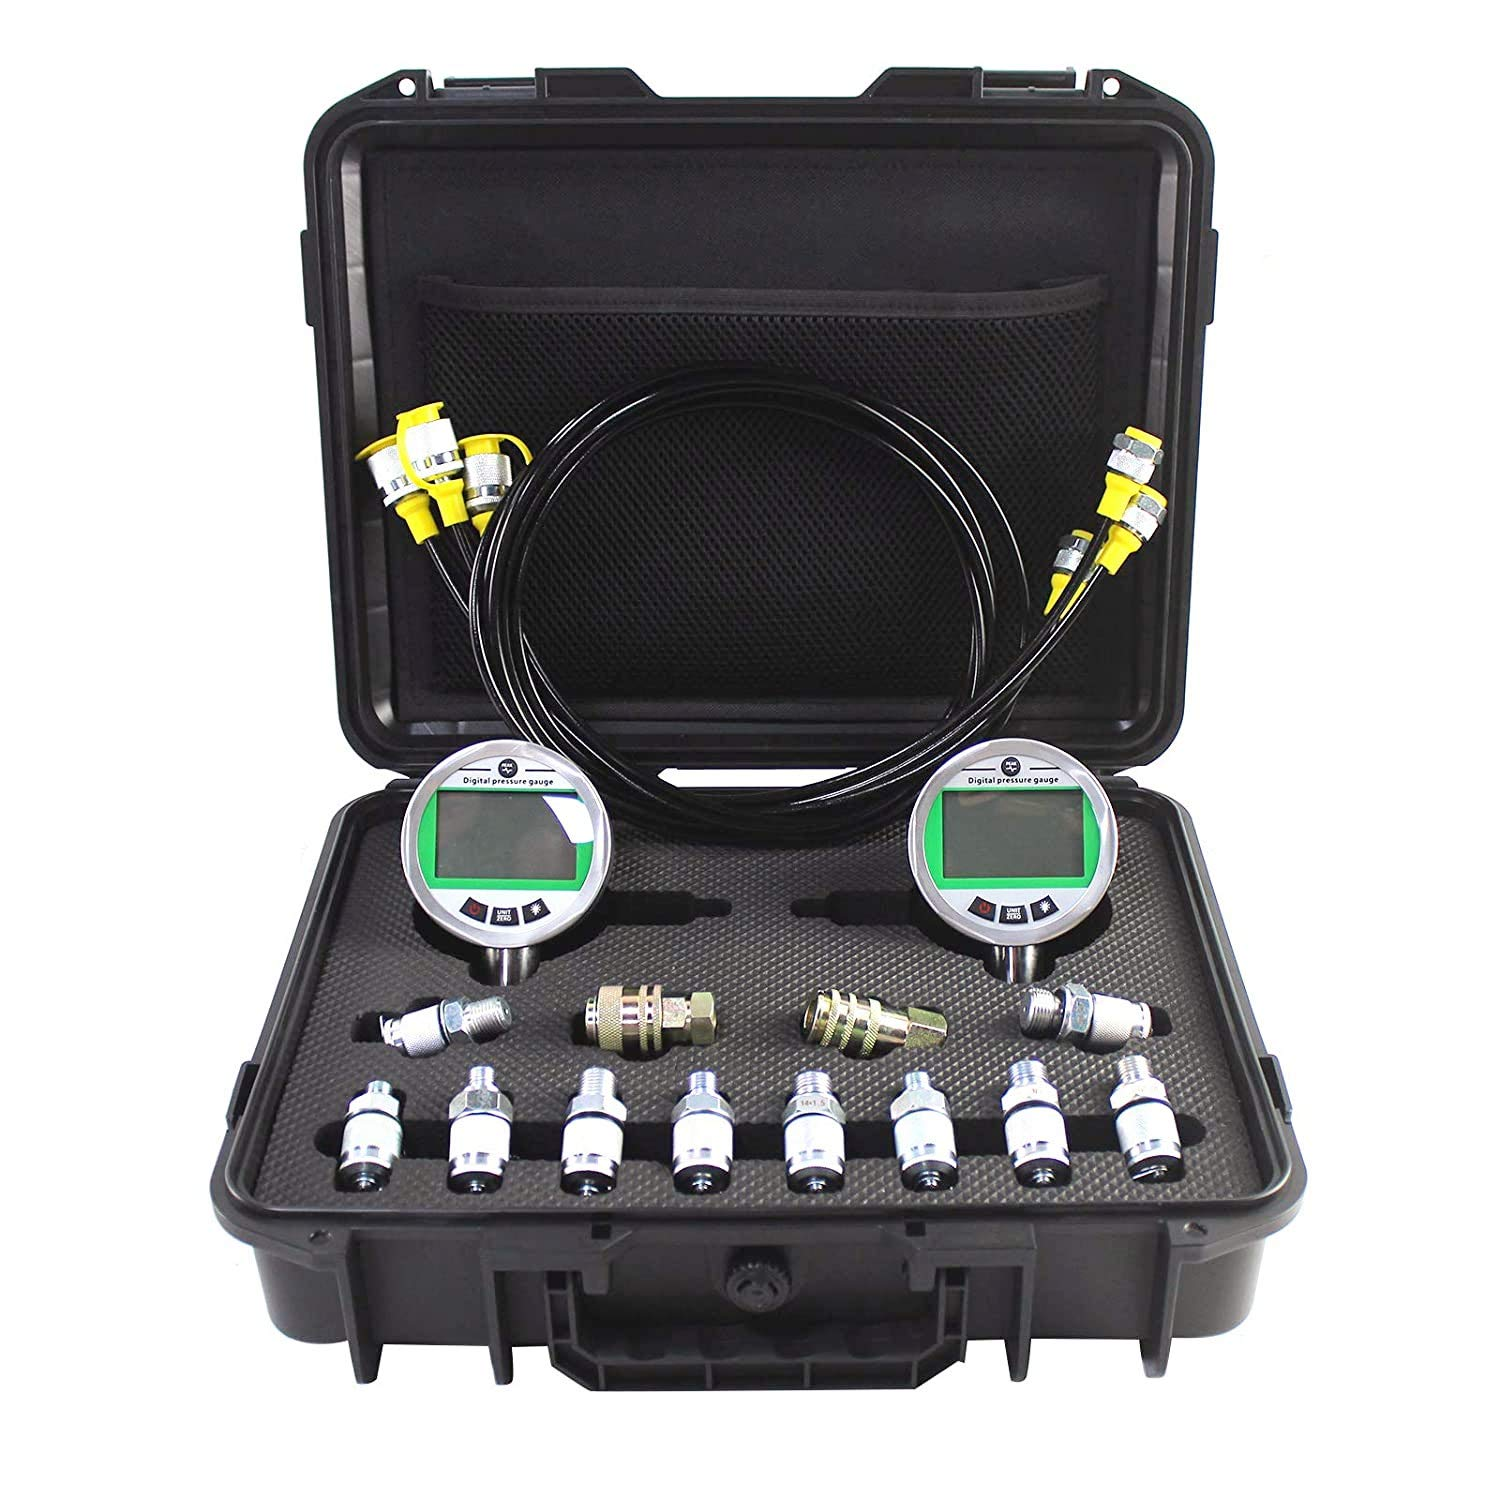 SINOCMP Special price for a limited time Digital Pressure gift Gauge Kit Pressur 70MPA 10000PSI 2 with